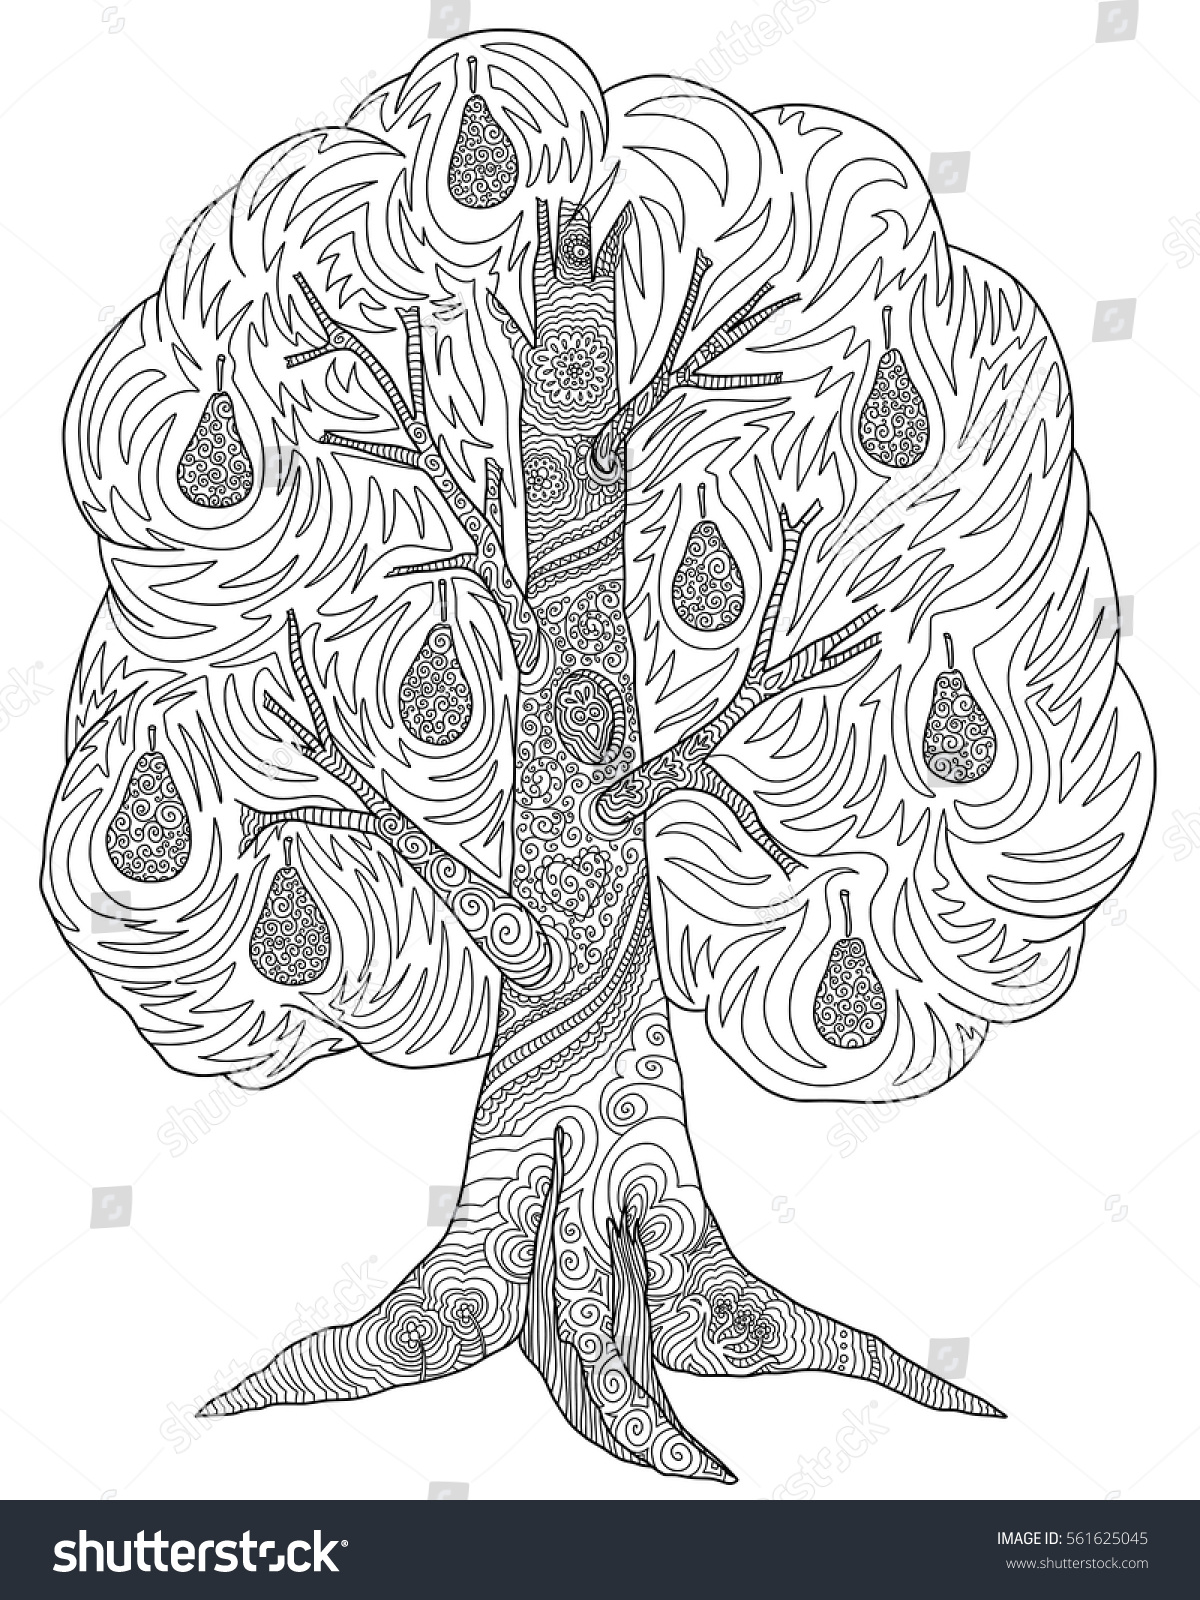 doodle coloring book tree pear stock vector 561625045